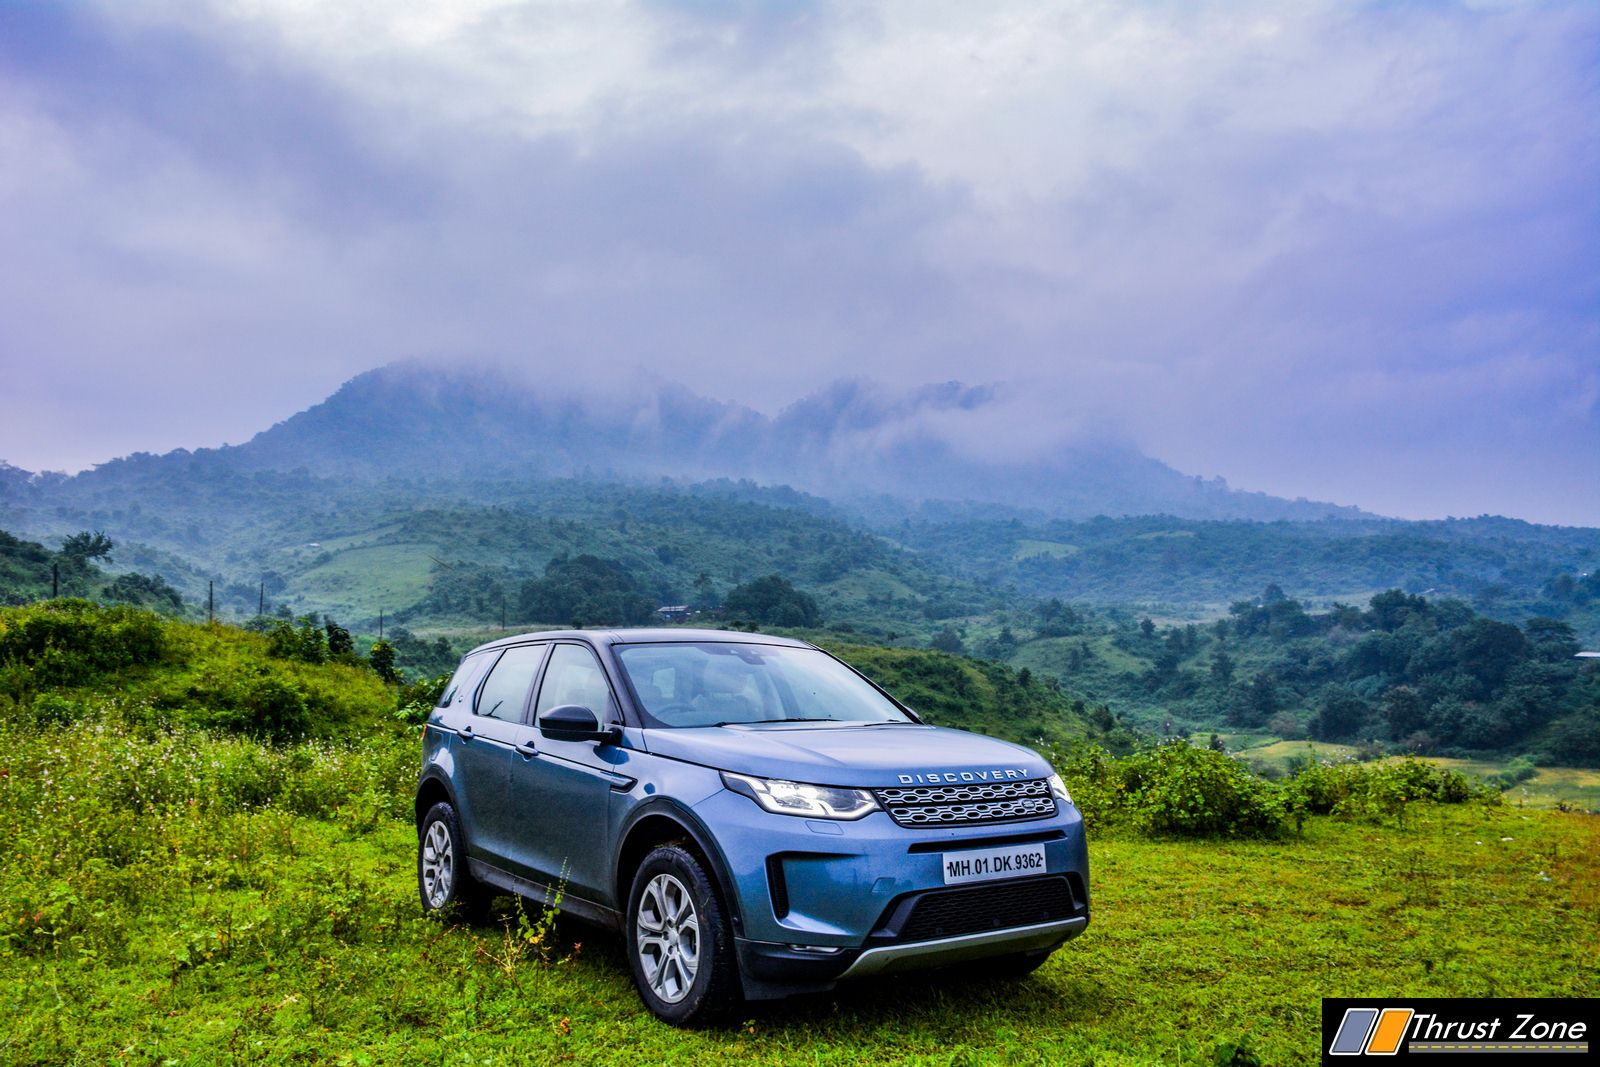 2020-Land-Rover-Discovery-Diesel-India-Review-16